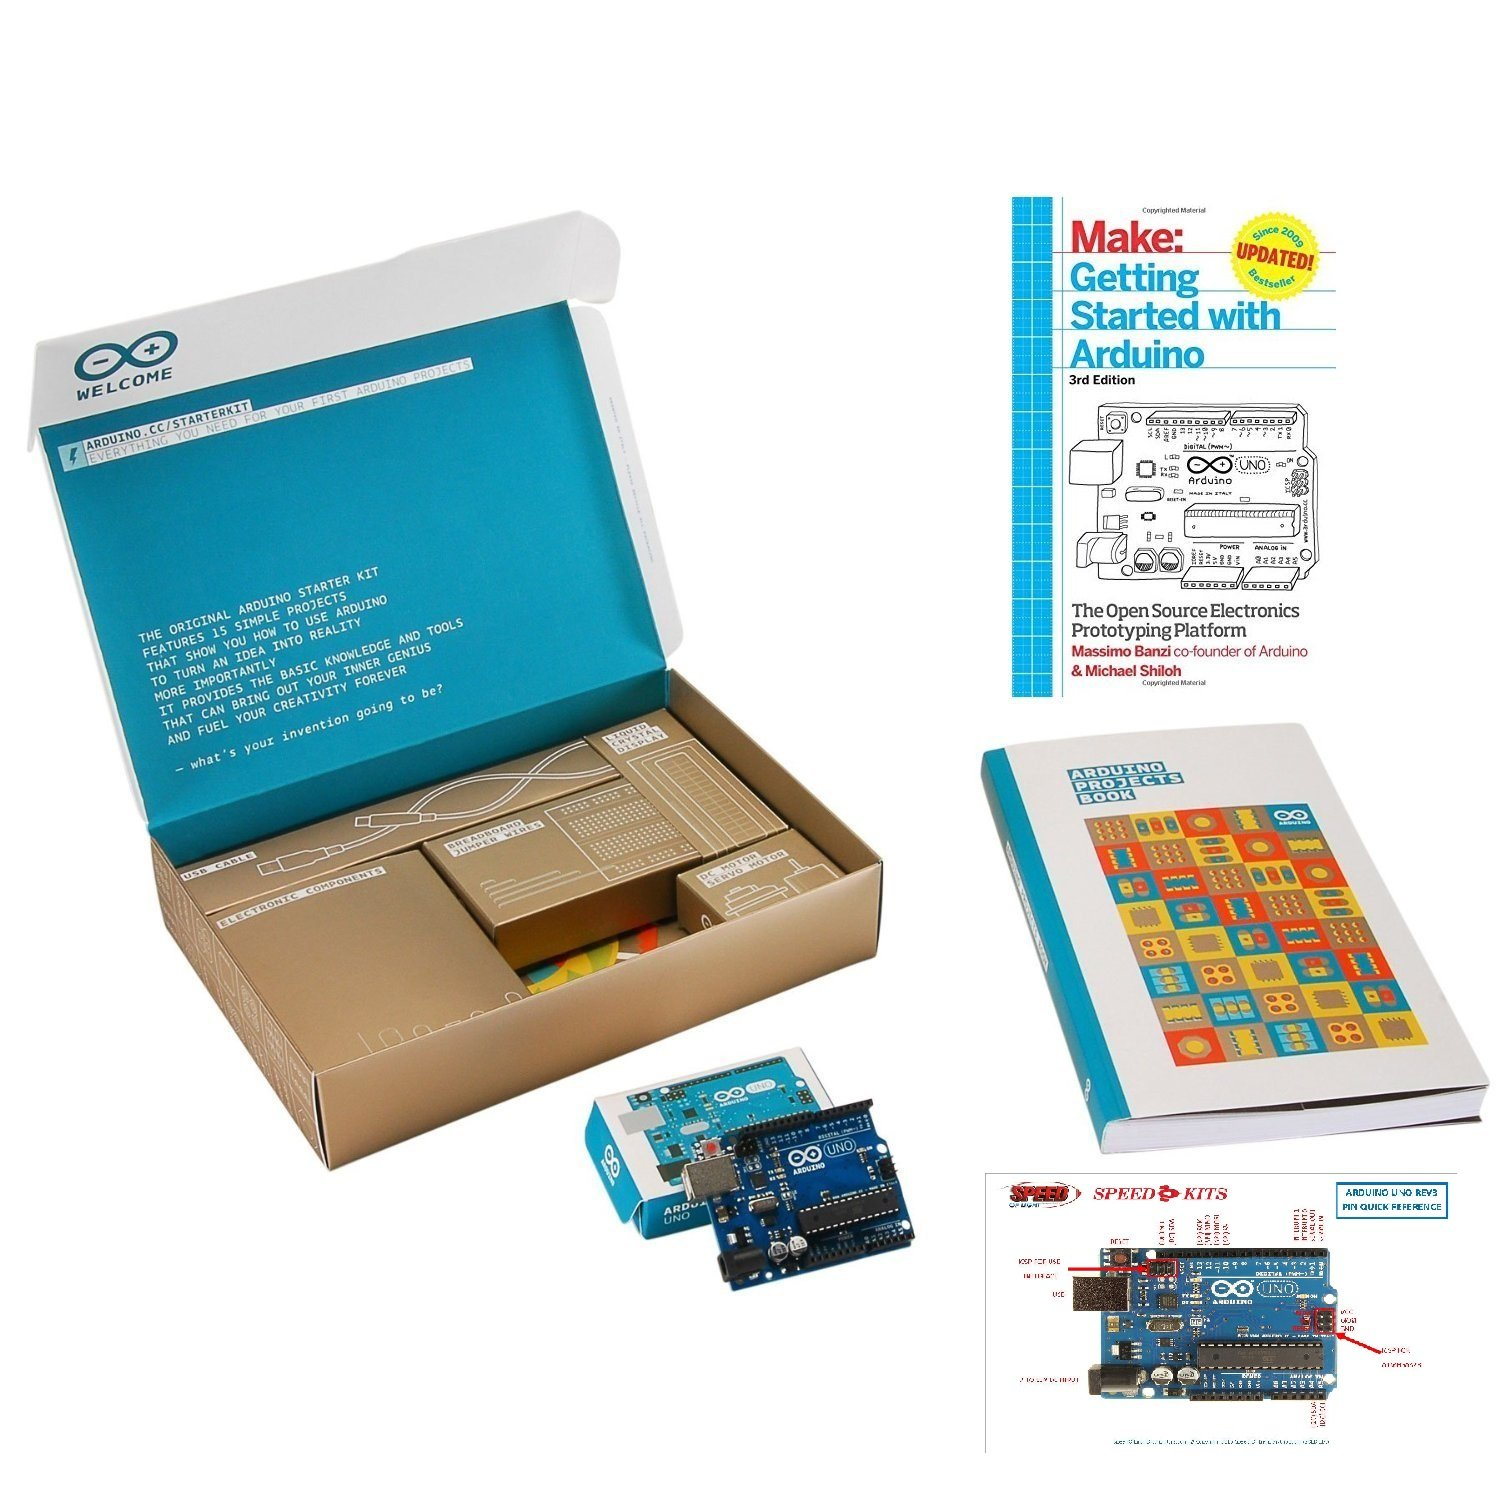 The Official Arduino Starter Kit Deluxe Bundle with Make: Getting Started with Arduino: The Open Source Electronics Prototyping Platform 3rd Edition Book by Arduino